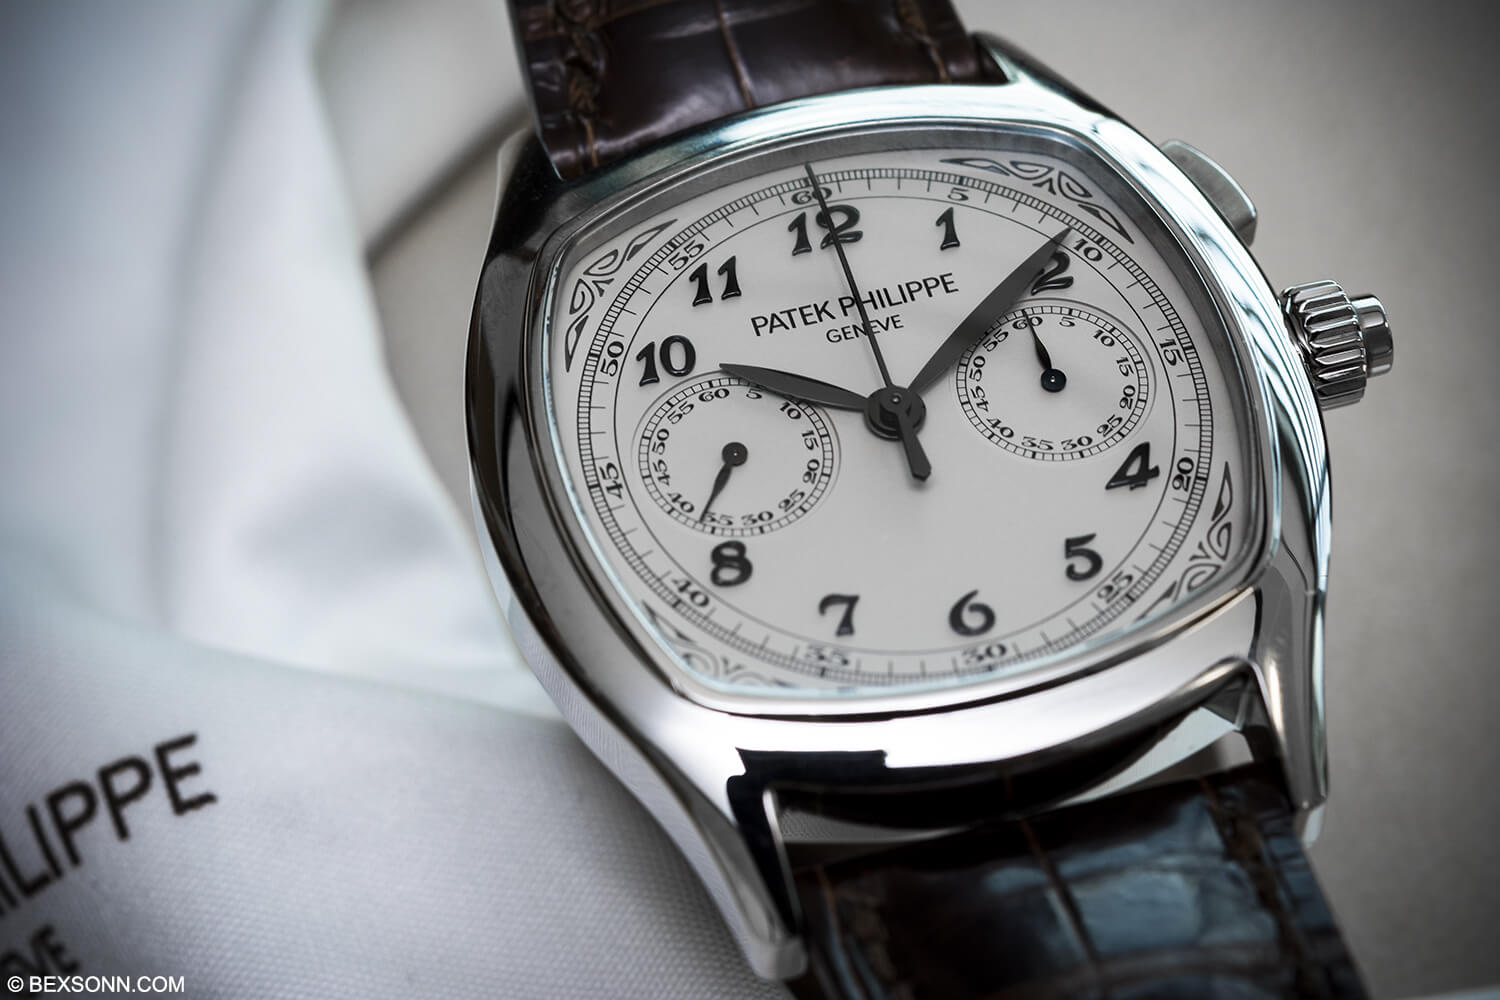 Patek Philippe Split-Seconds Monopusher Chronograph Ref. 5950A